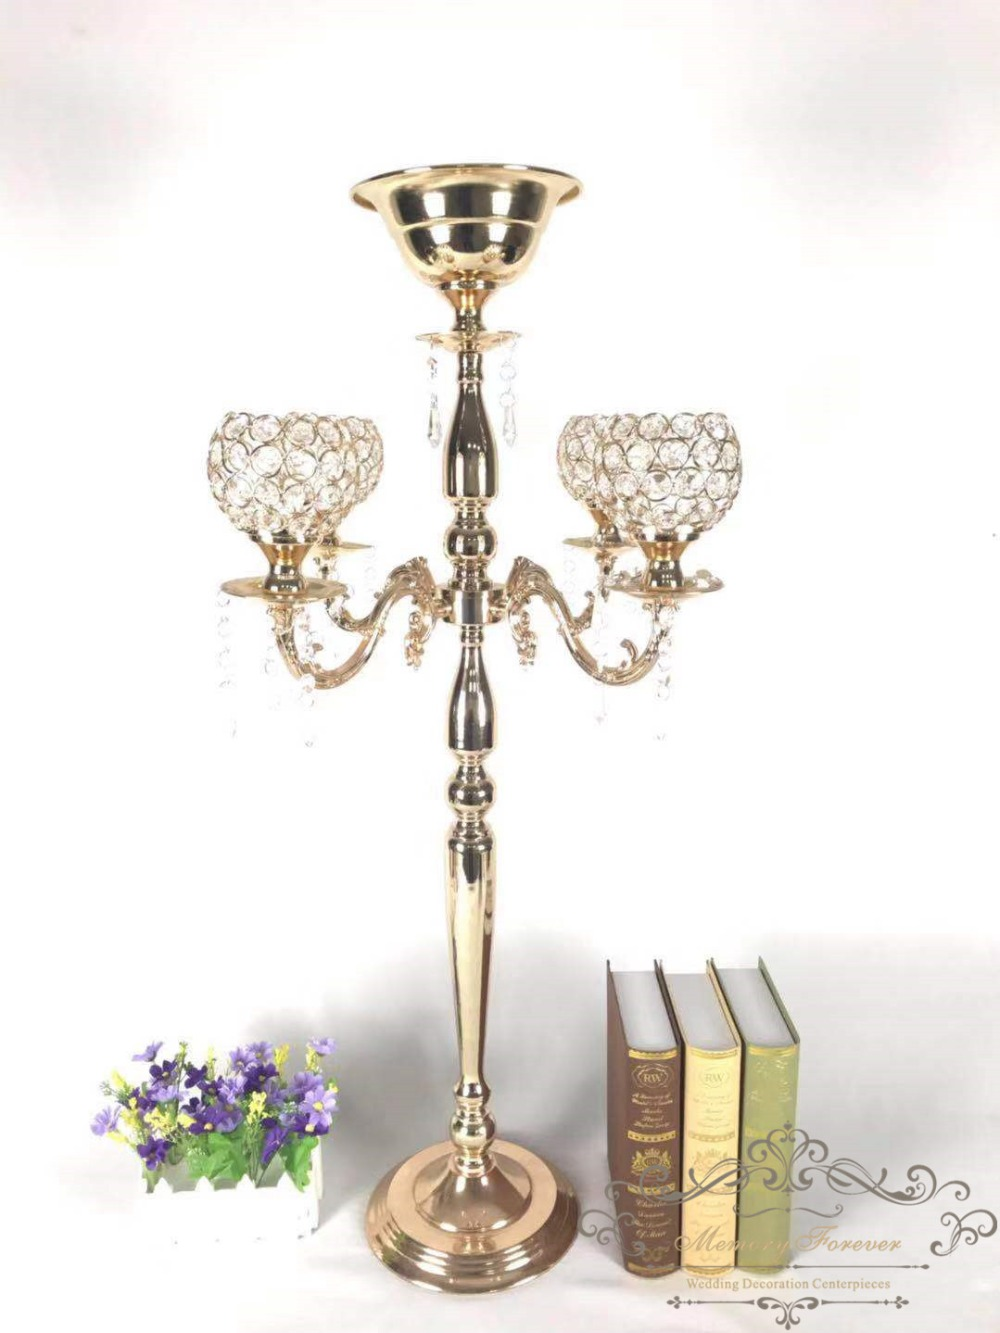 10PCS Tall Crystal Candelabra with Flower Bowl for Wedding Decoration Table Centerpiece Metal Gold Candle Holders Candlesticks